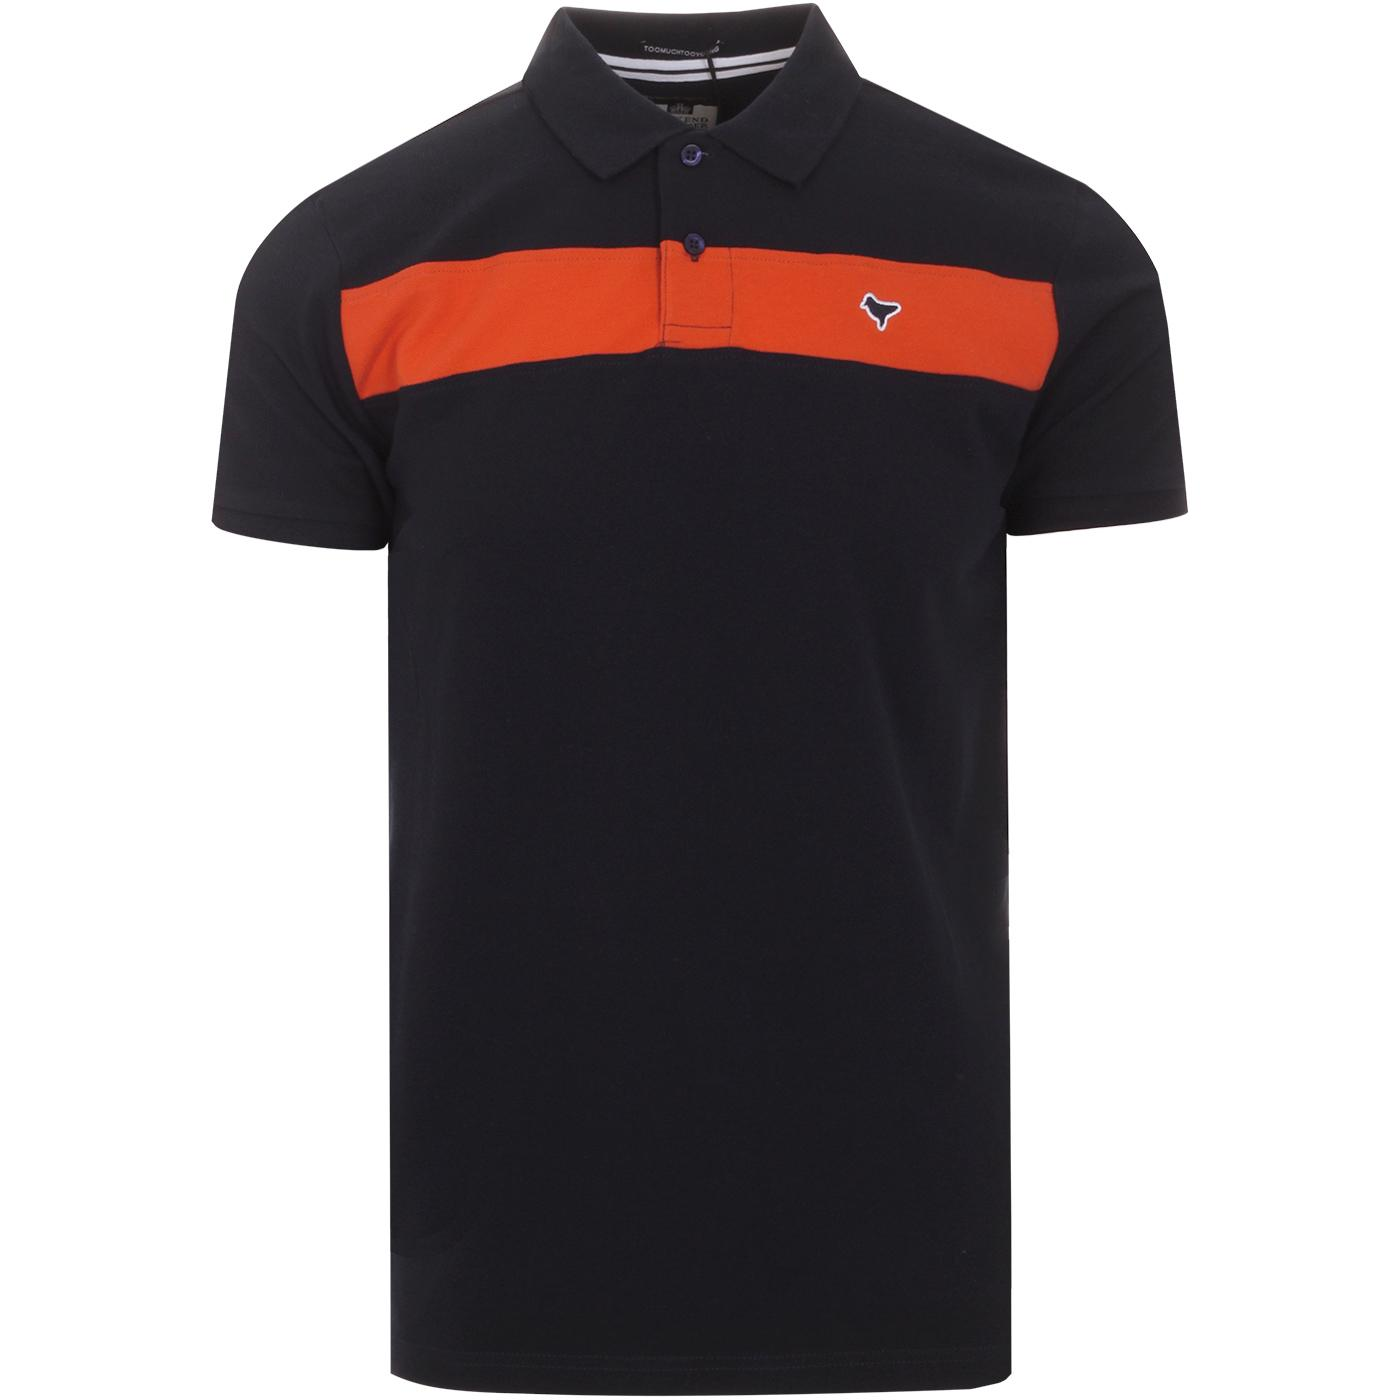 Panama WEEKEND OFFENDER Mod Panel Polo Shirt N